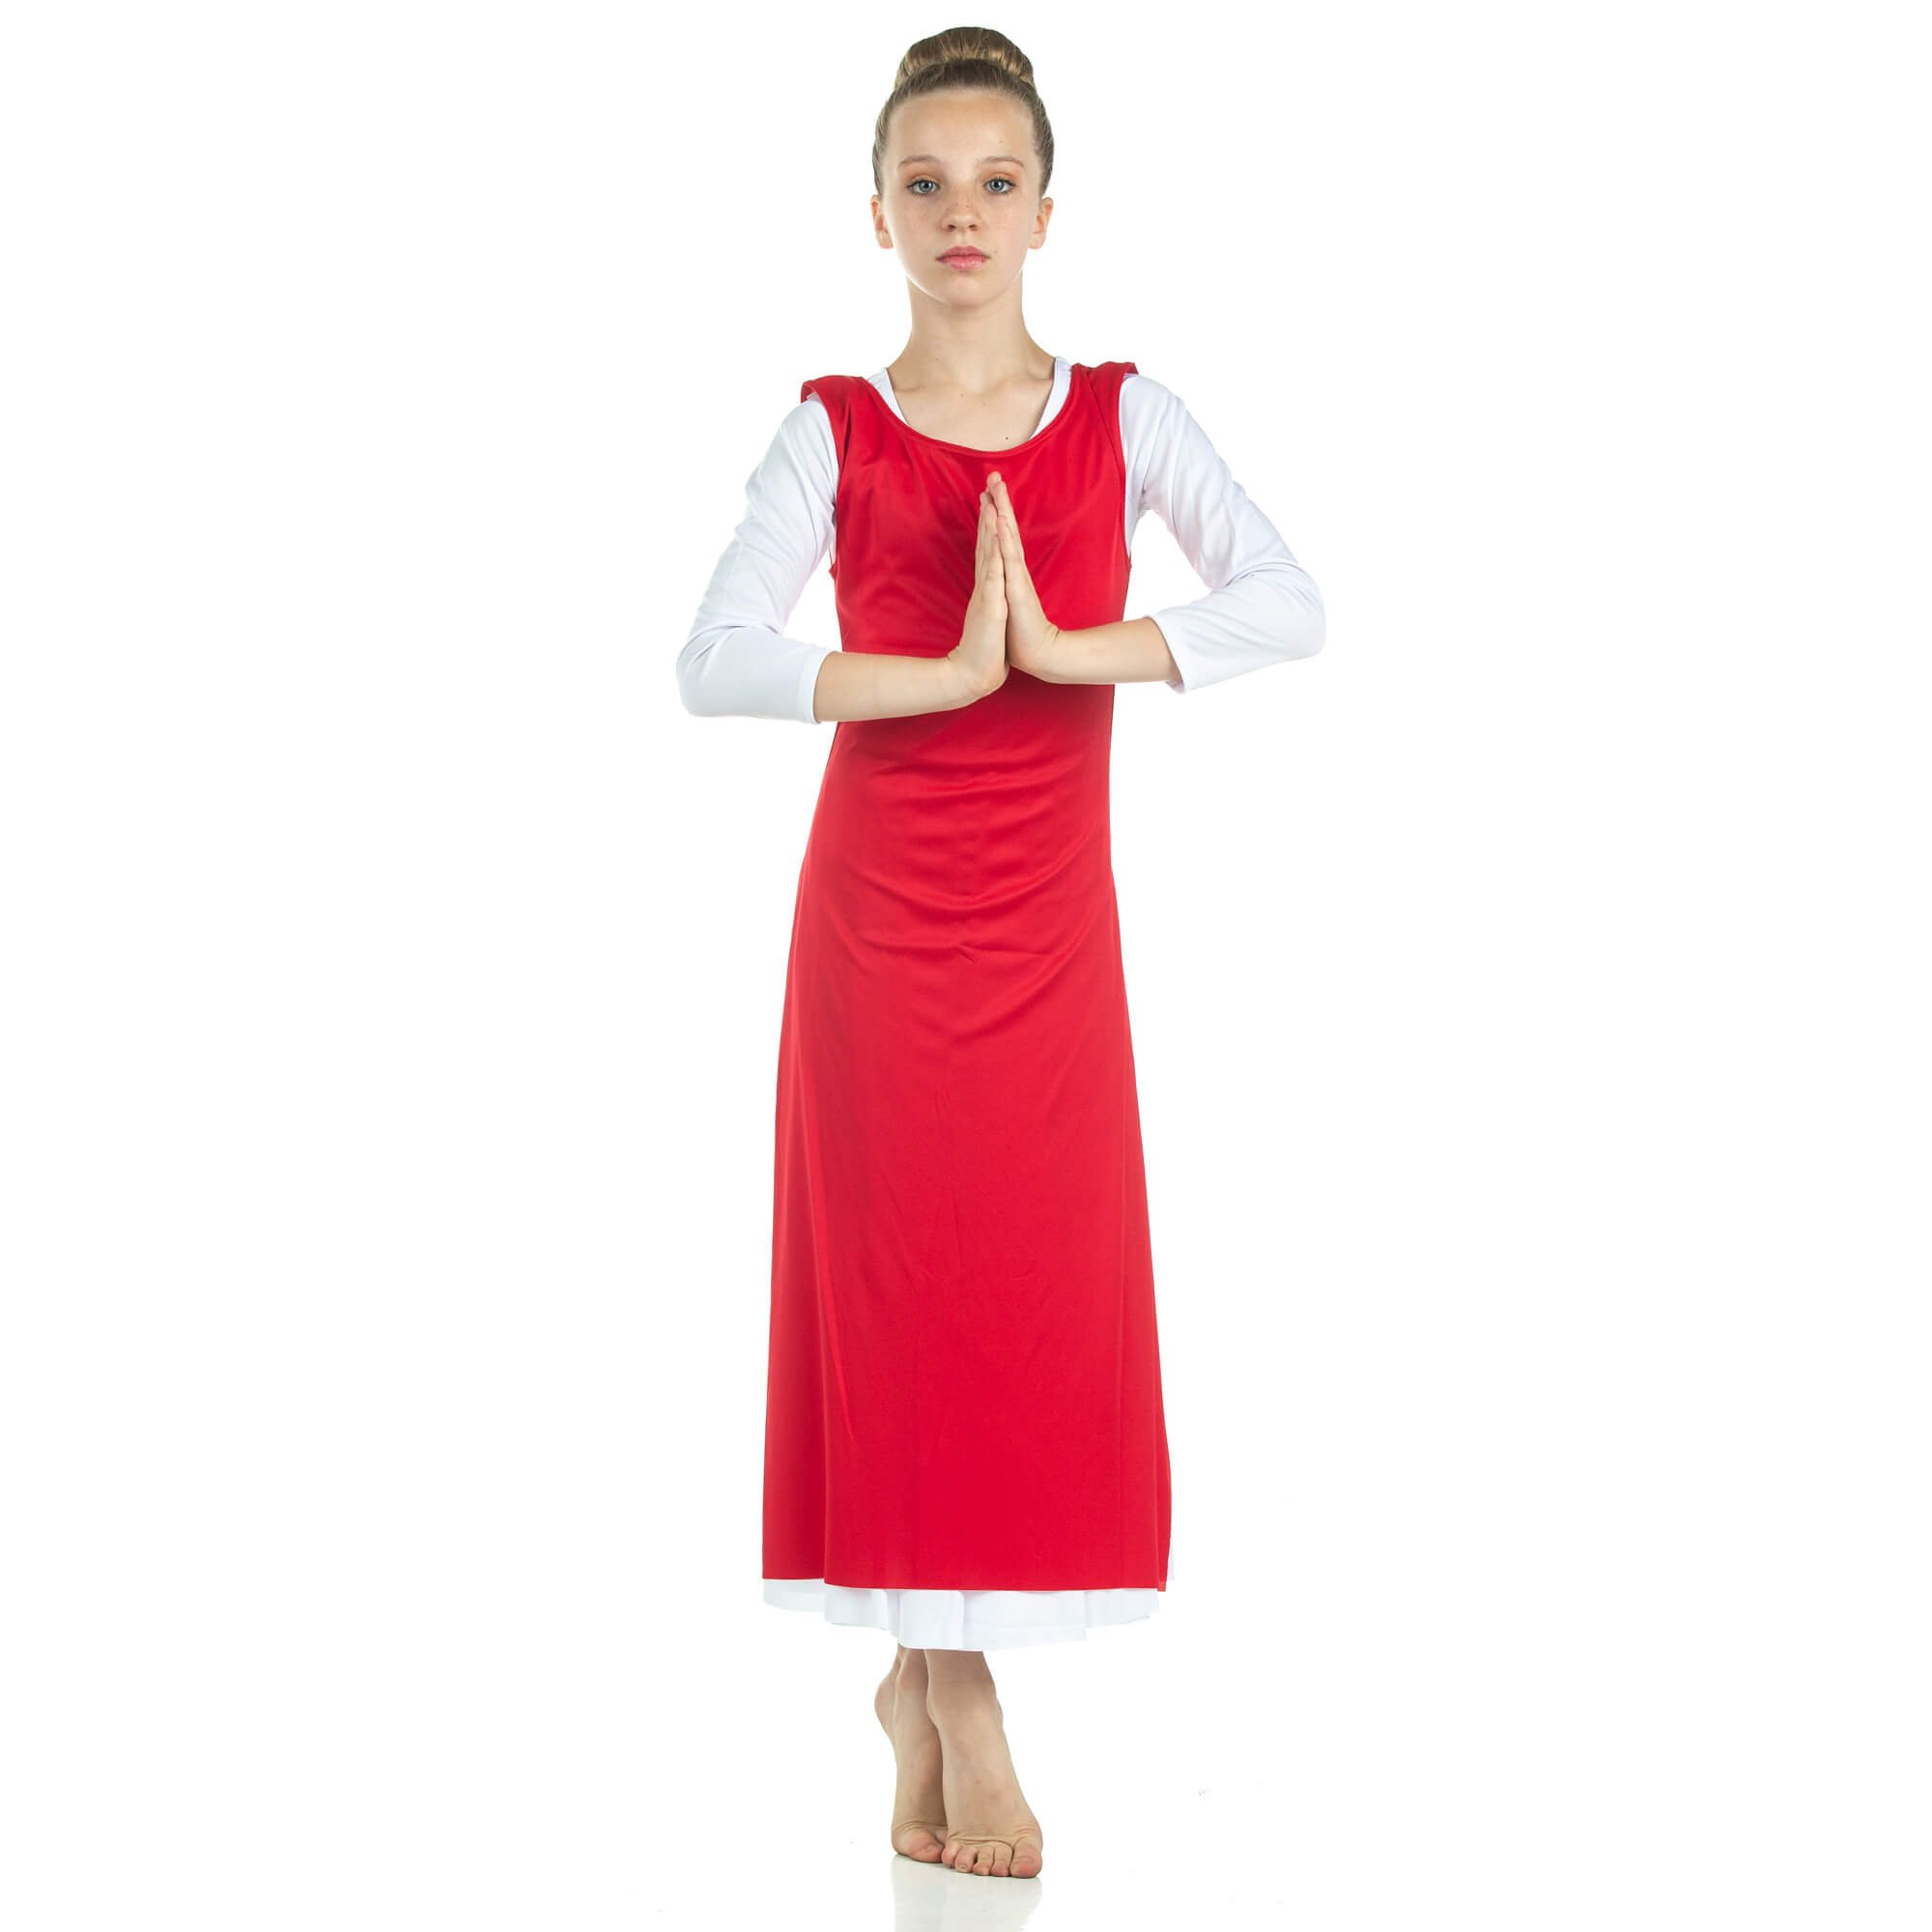 Child Worship Dance Tunic with Side Slits (white dress not included)